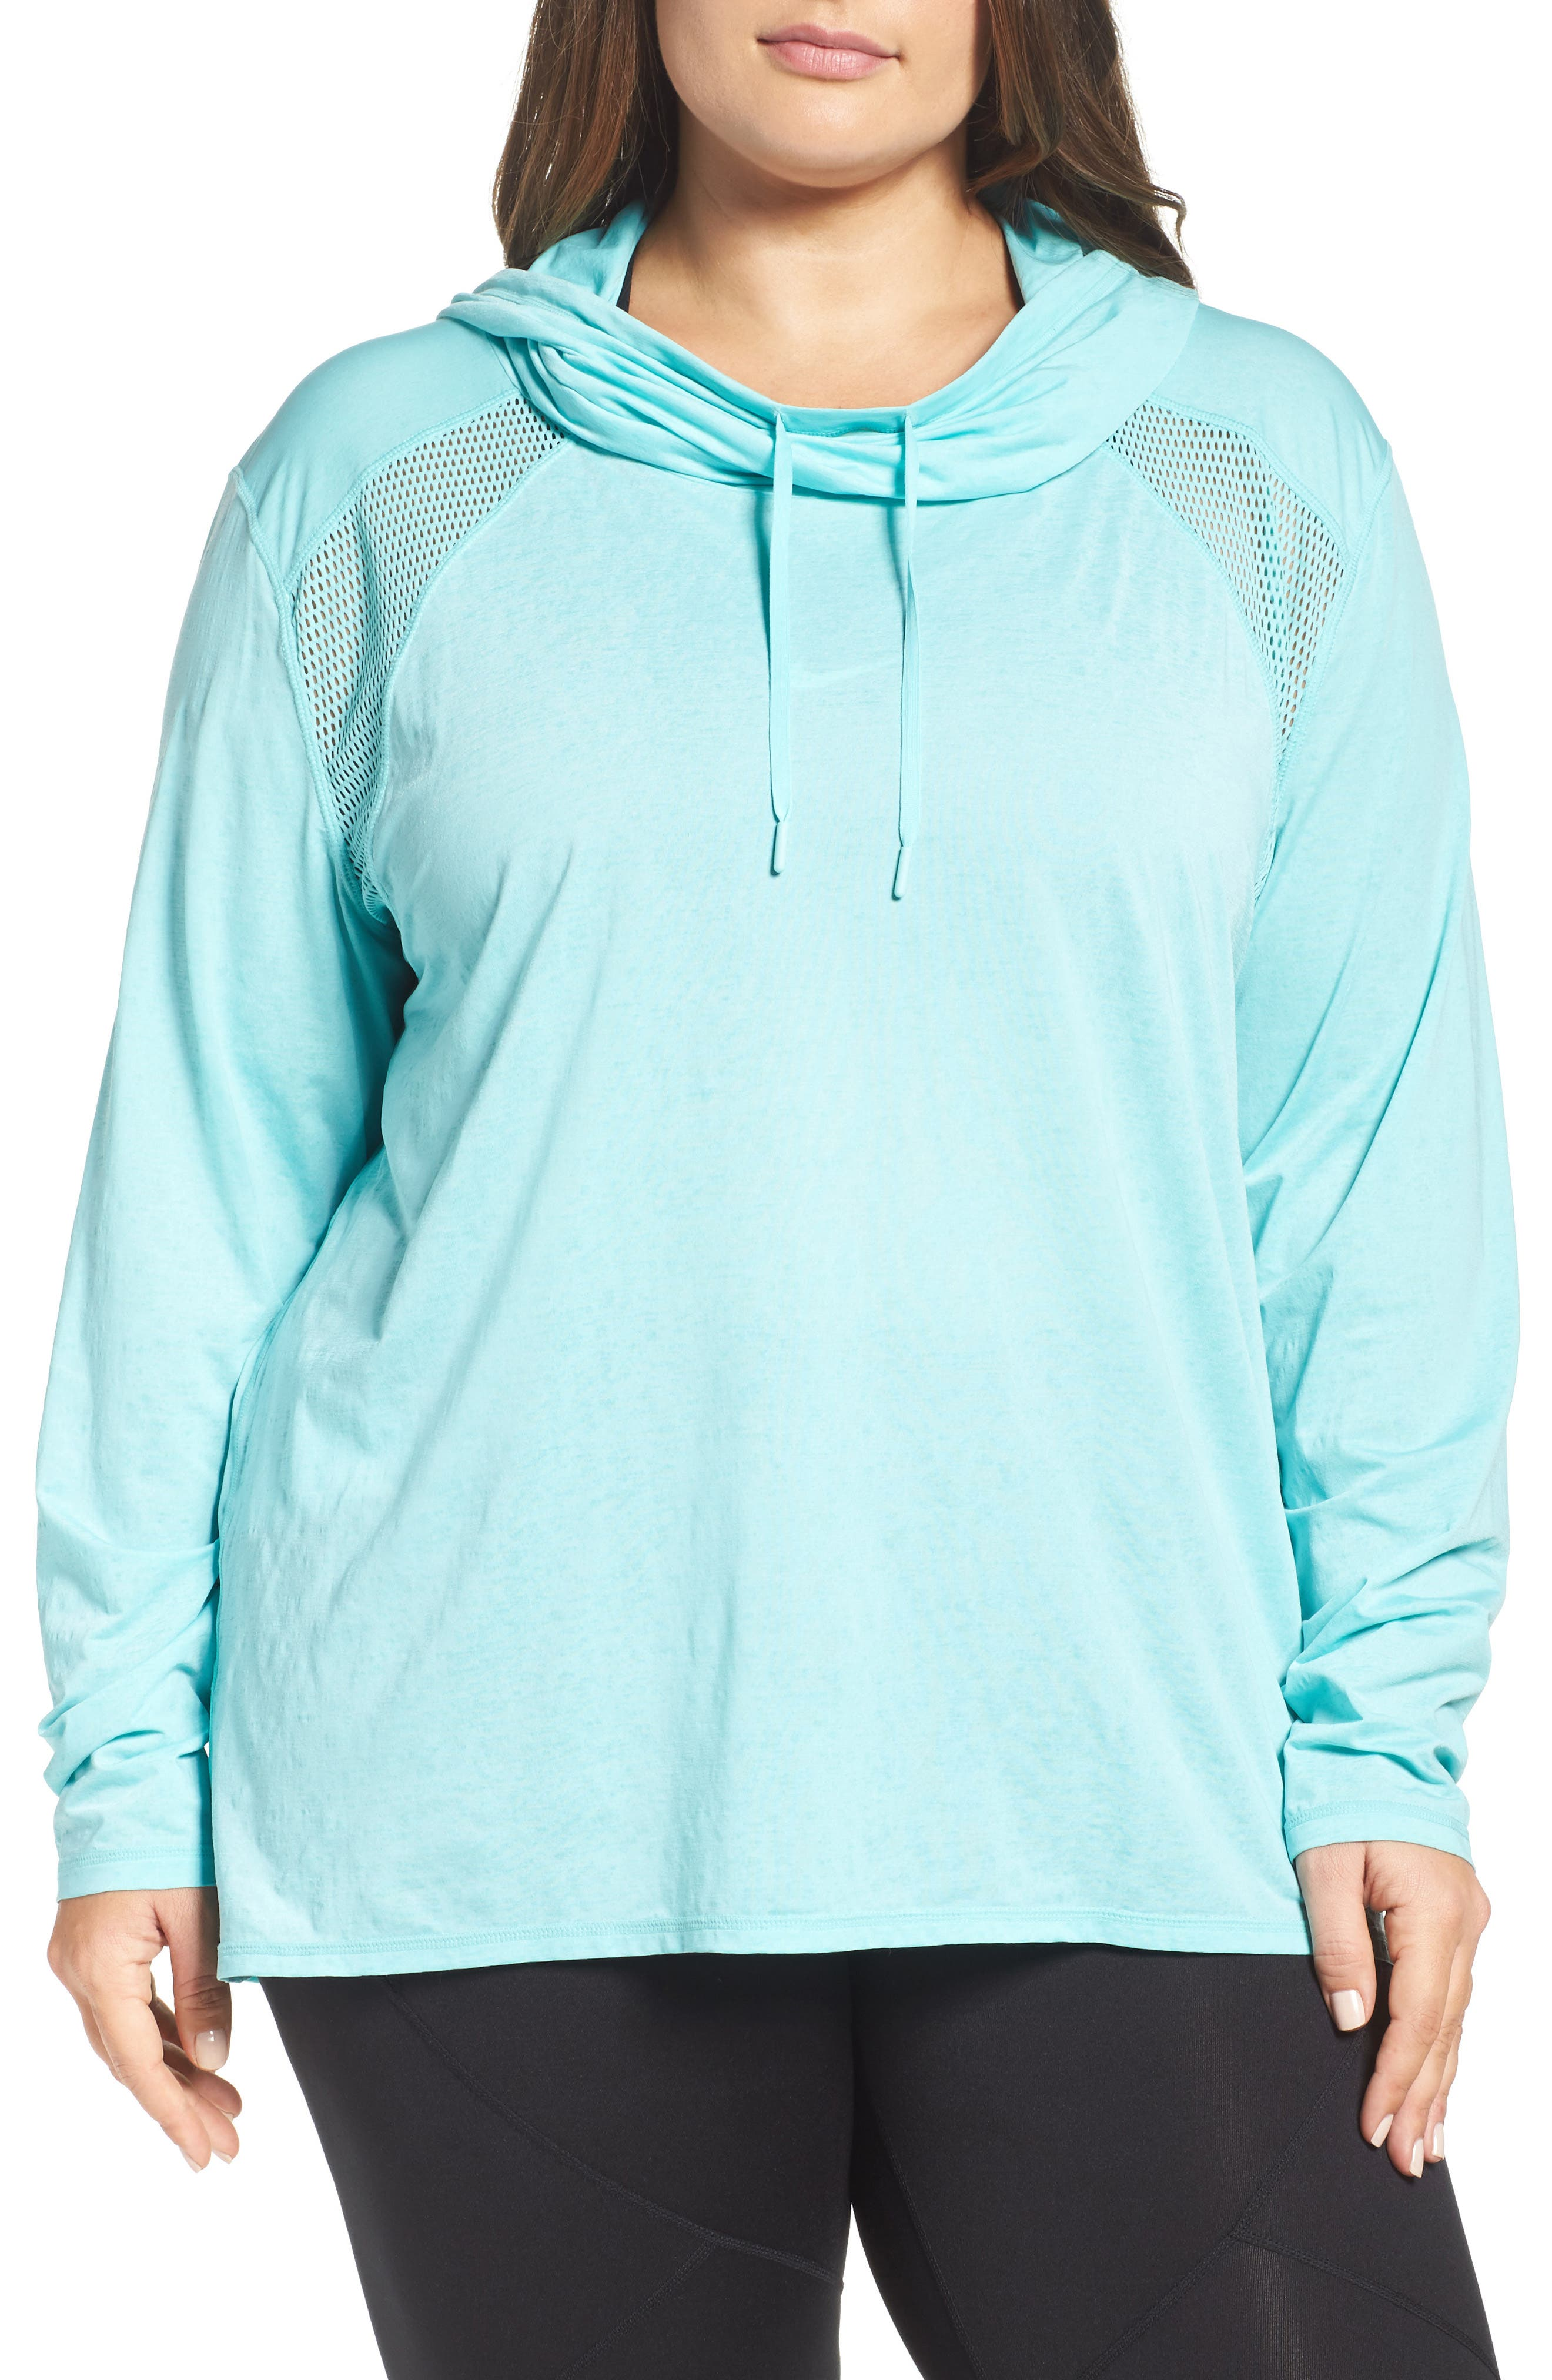 Zella Adventure Hooded Pullover (Plus Size)